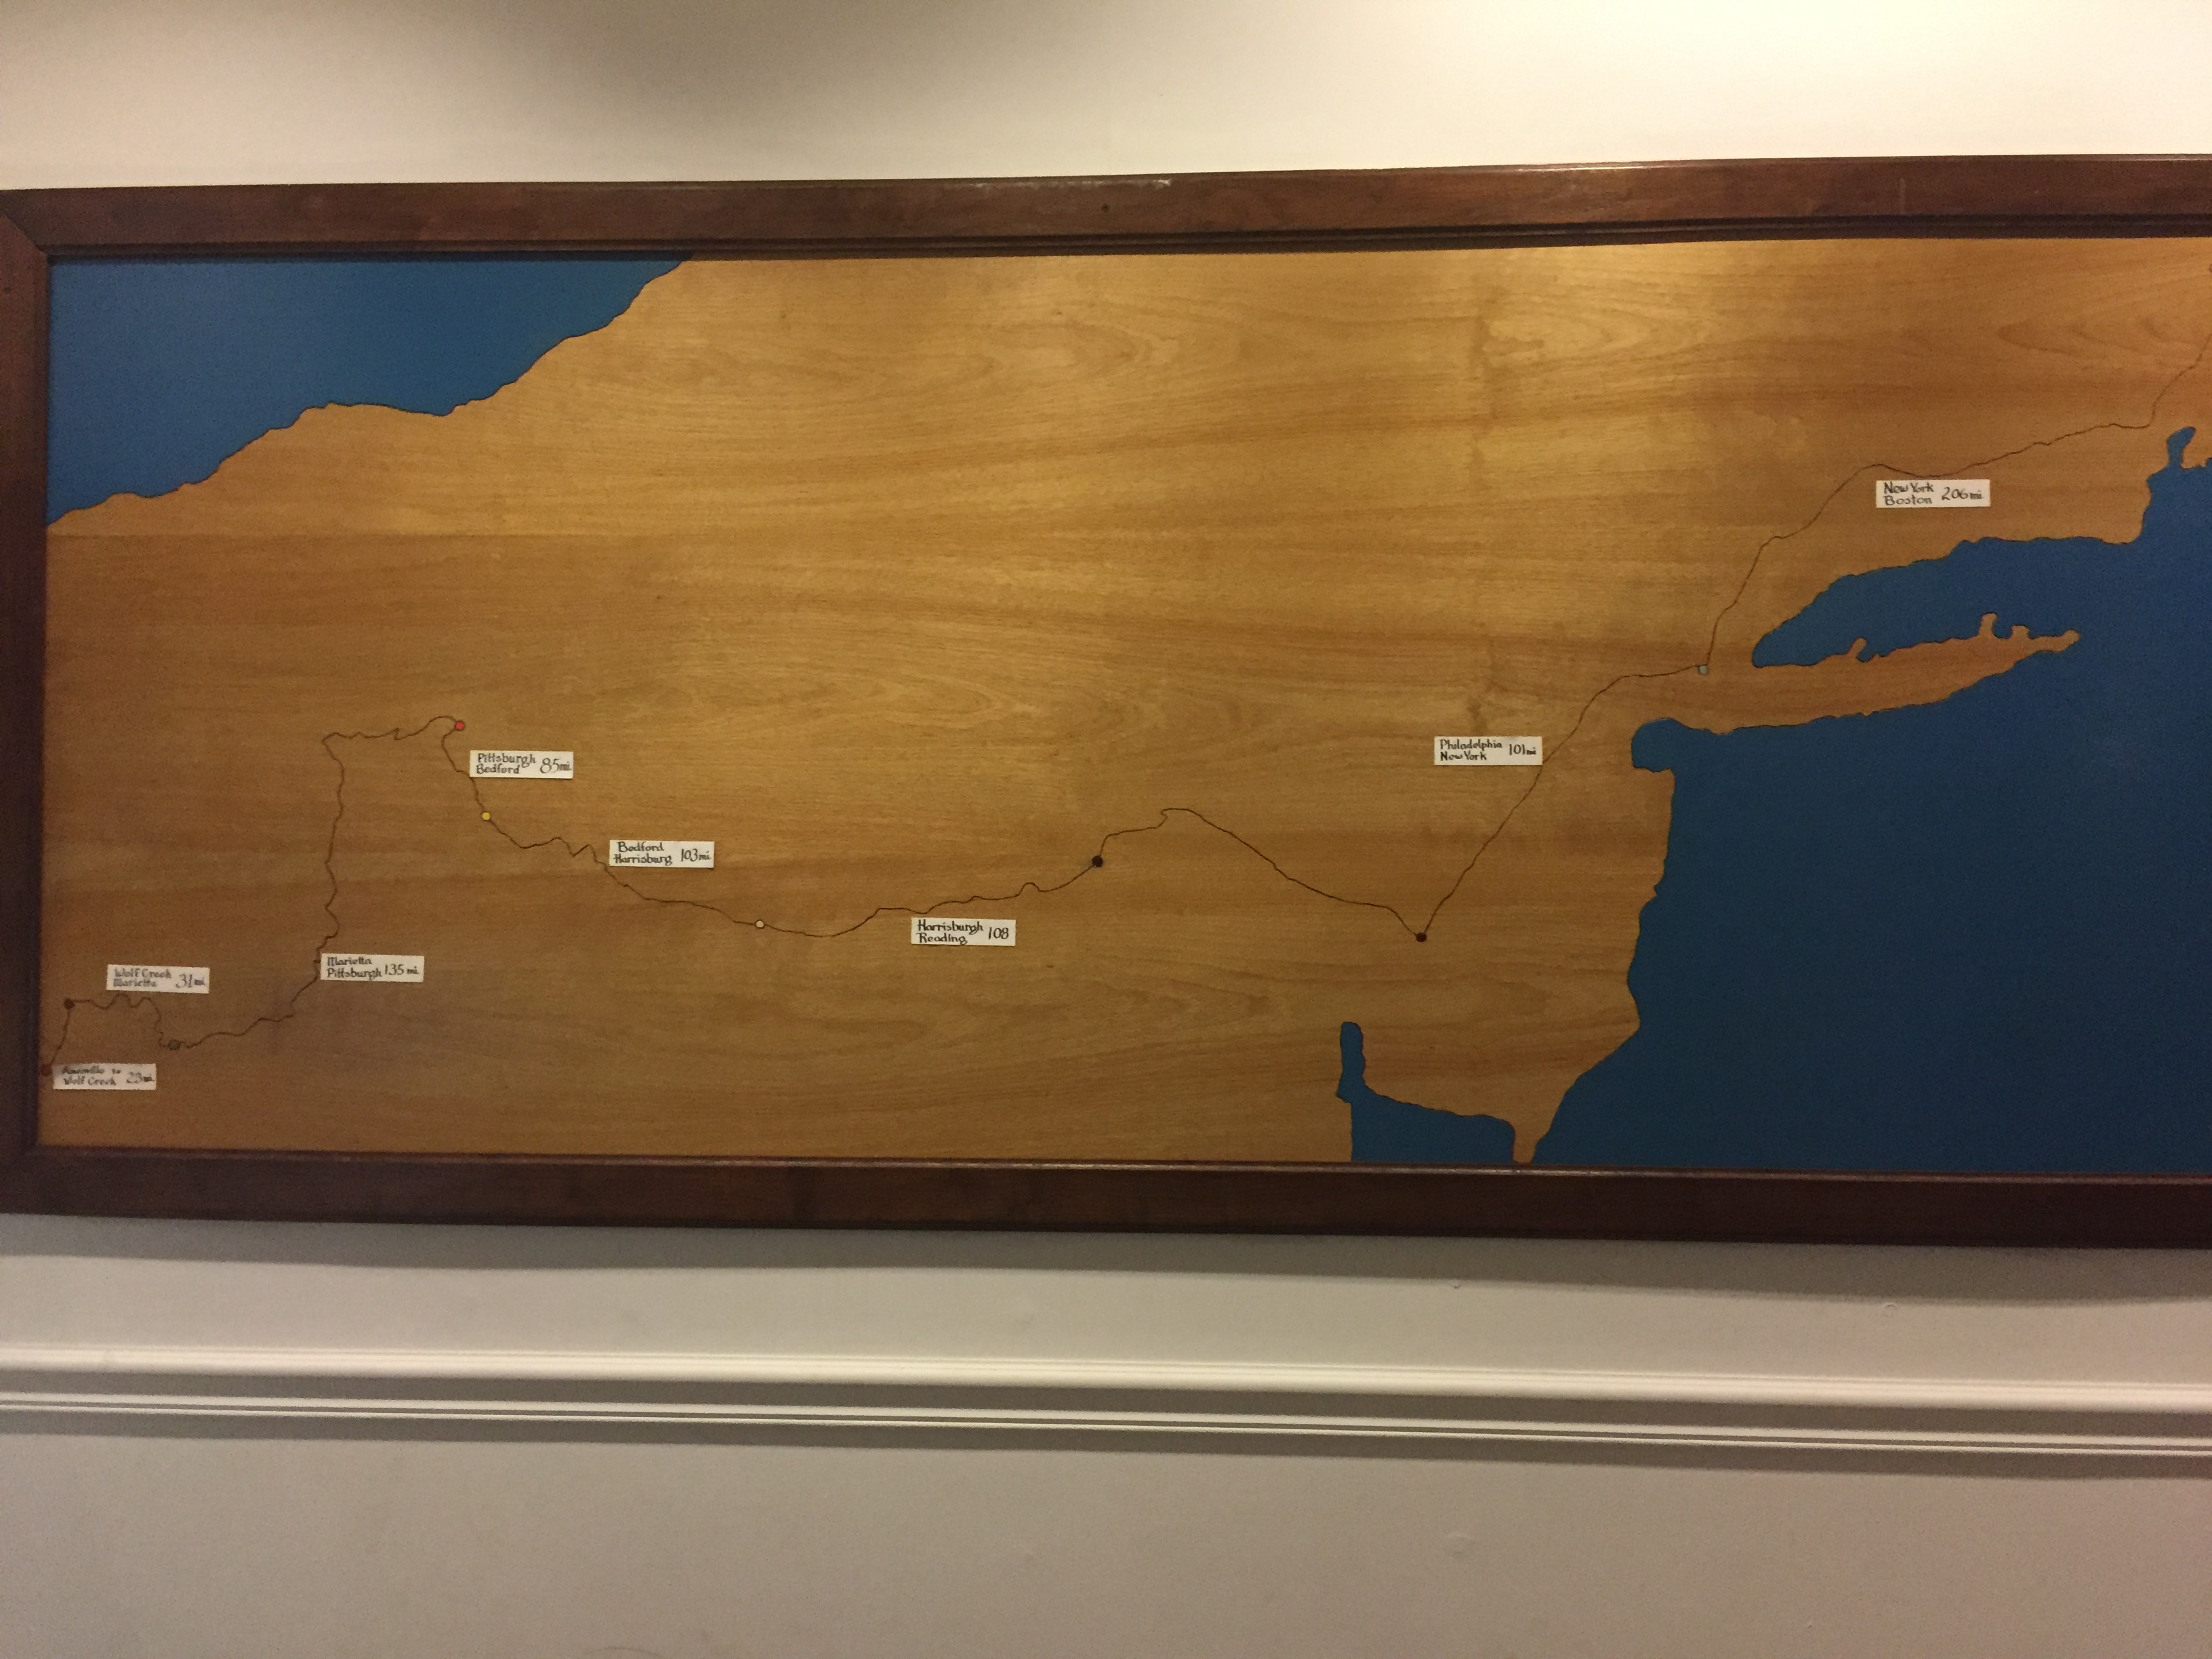 Located inside the museum, this is the route that Samuel Brown took to sell the pelts and buy library books in Boston. Photo by J Hazen on June 14, 2017.